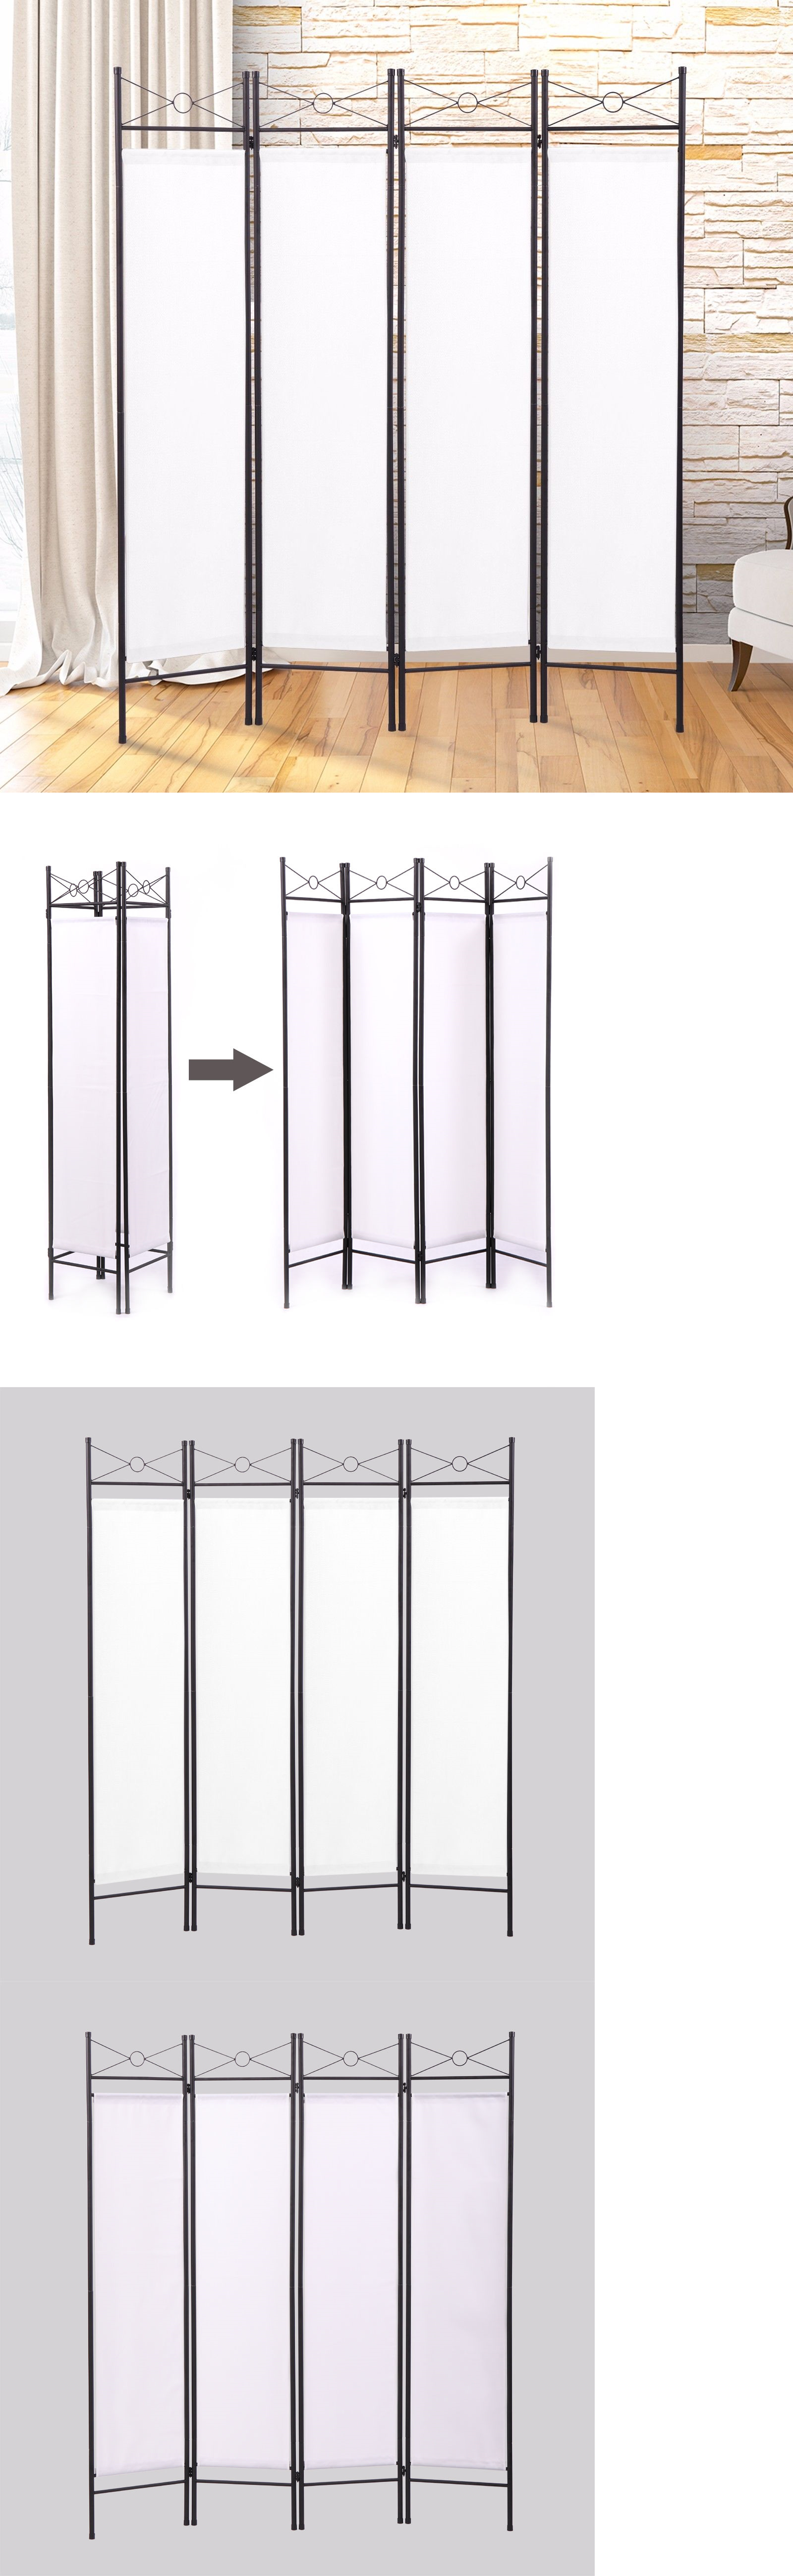 Screens and Room Dividers 31601: White 4 Panel Room Divider Privacy ...